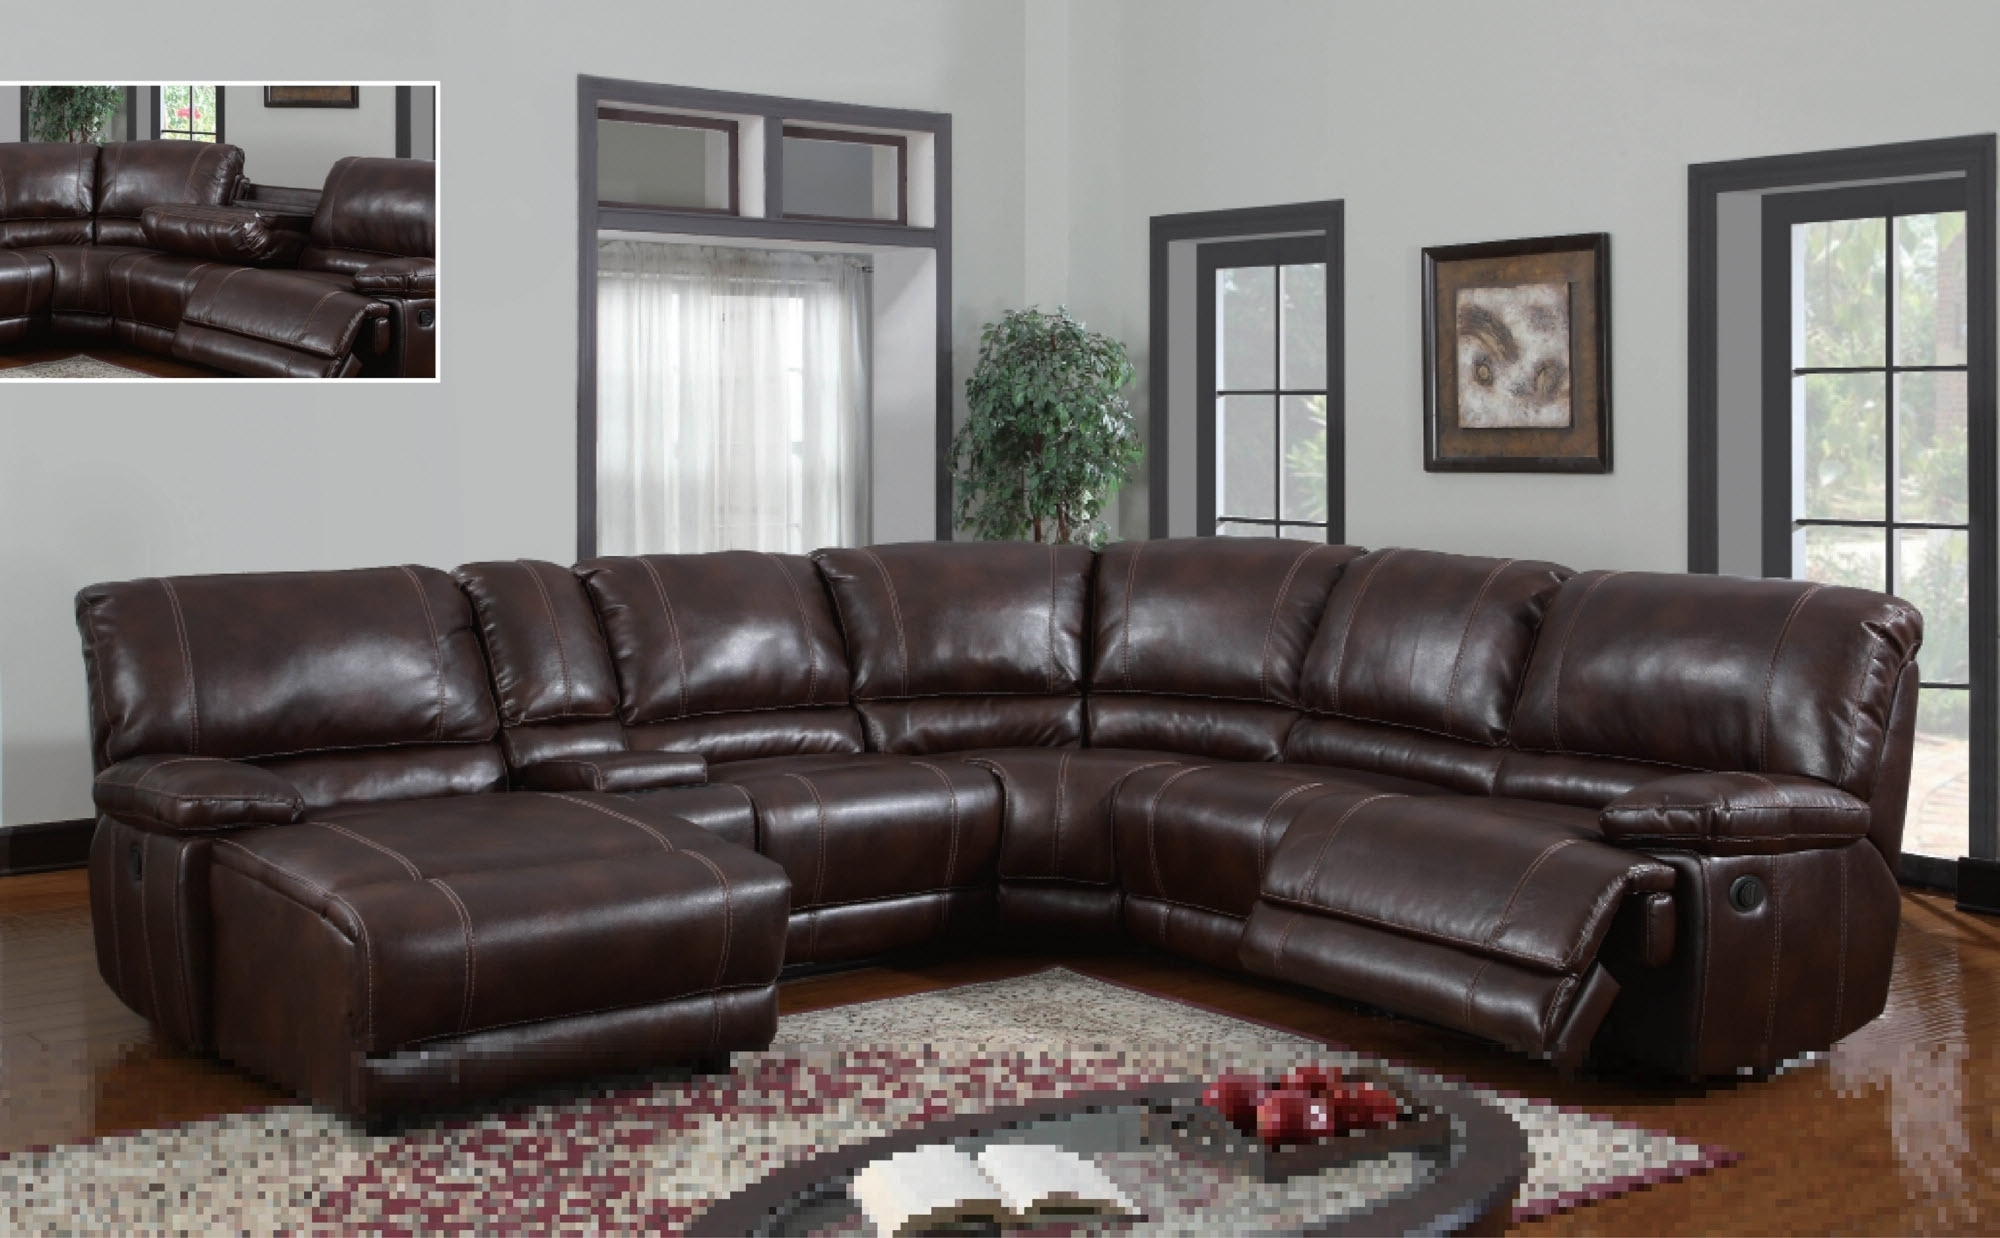 2017 Collection Individual Piece Sectional Sofas – Buildsimplehome With Regard To Individual Piece Sectional Sofas (View 1 of 15)